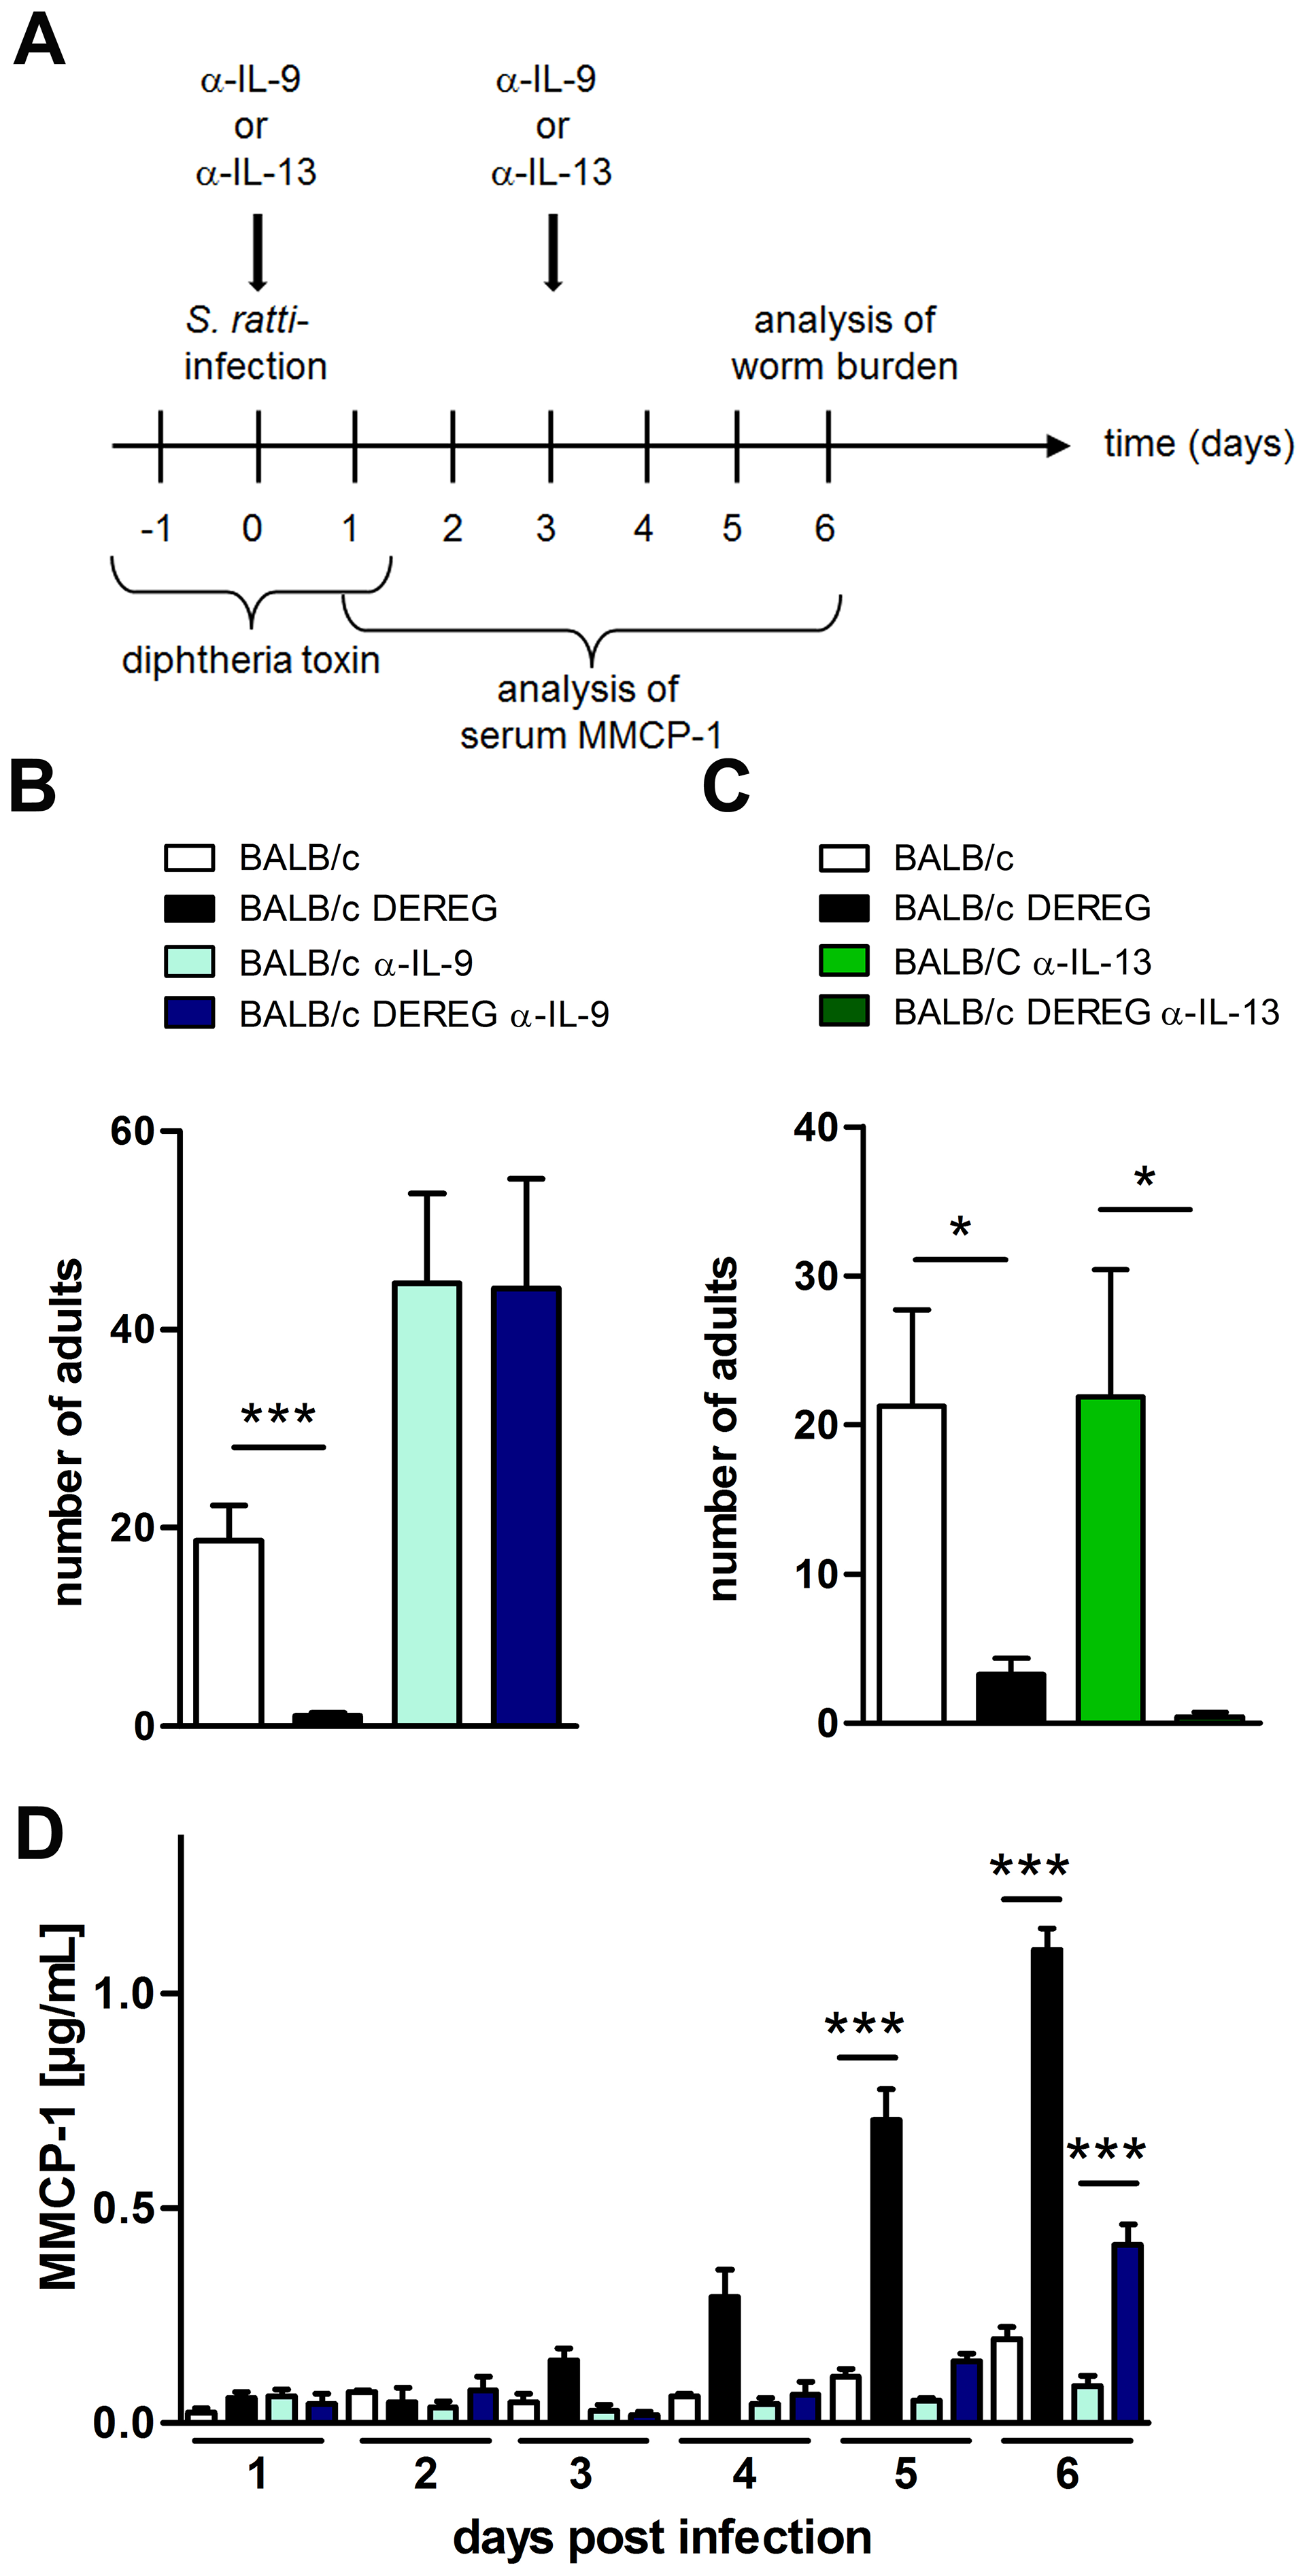 Role of IL-9 during <i>S. ratti</i> infection in Treg-depleted BALB/c mice.